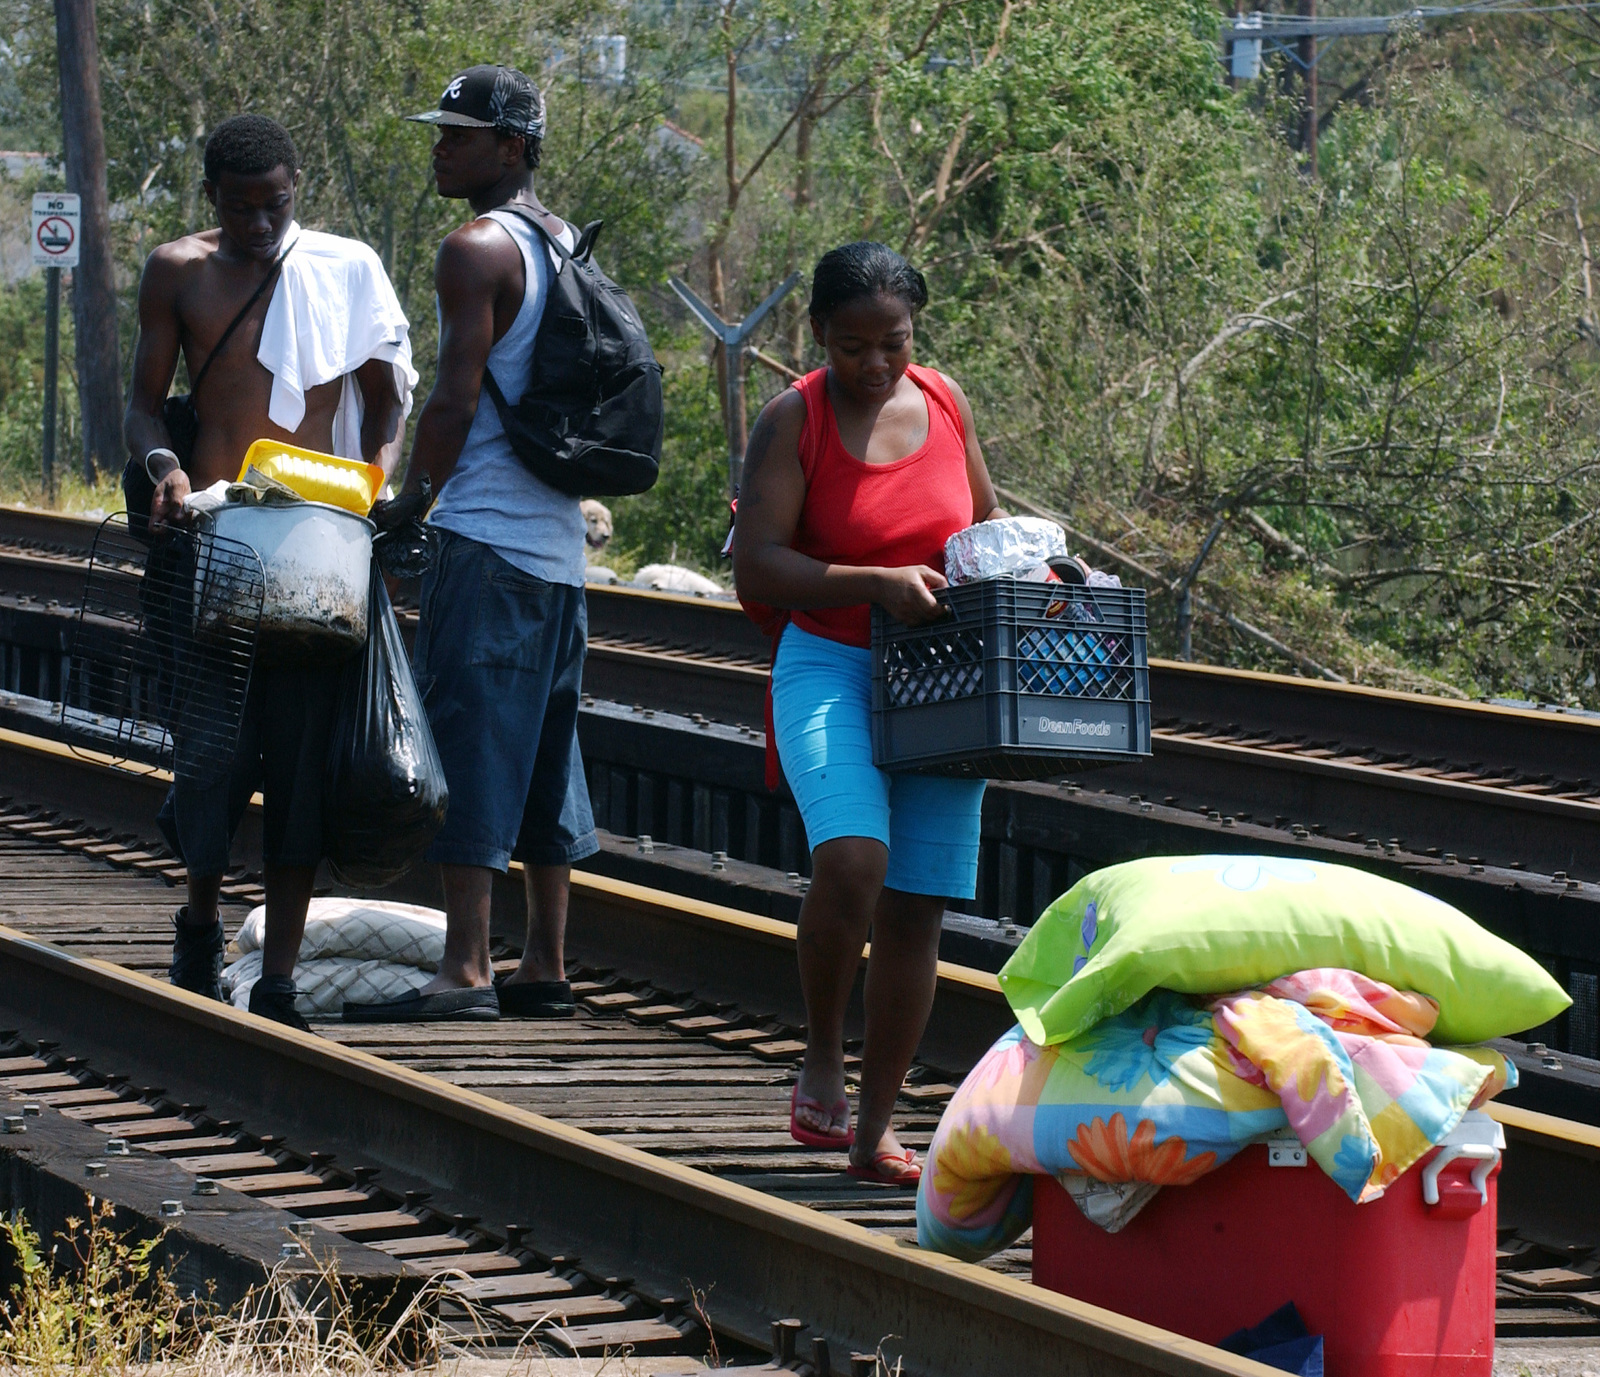 [Hurricane Katrina] New Orleans, LA, August 31, 2005 -- Local residents carry personal items over dry land to reach a second boat which will bring them to dry land.  They were brought to this location via FEMA Urban Search and Rescue personnel and local rescue workers.  Photo by Jocelyn Augustino/FEMA